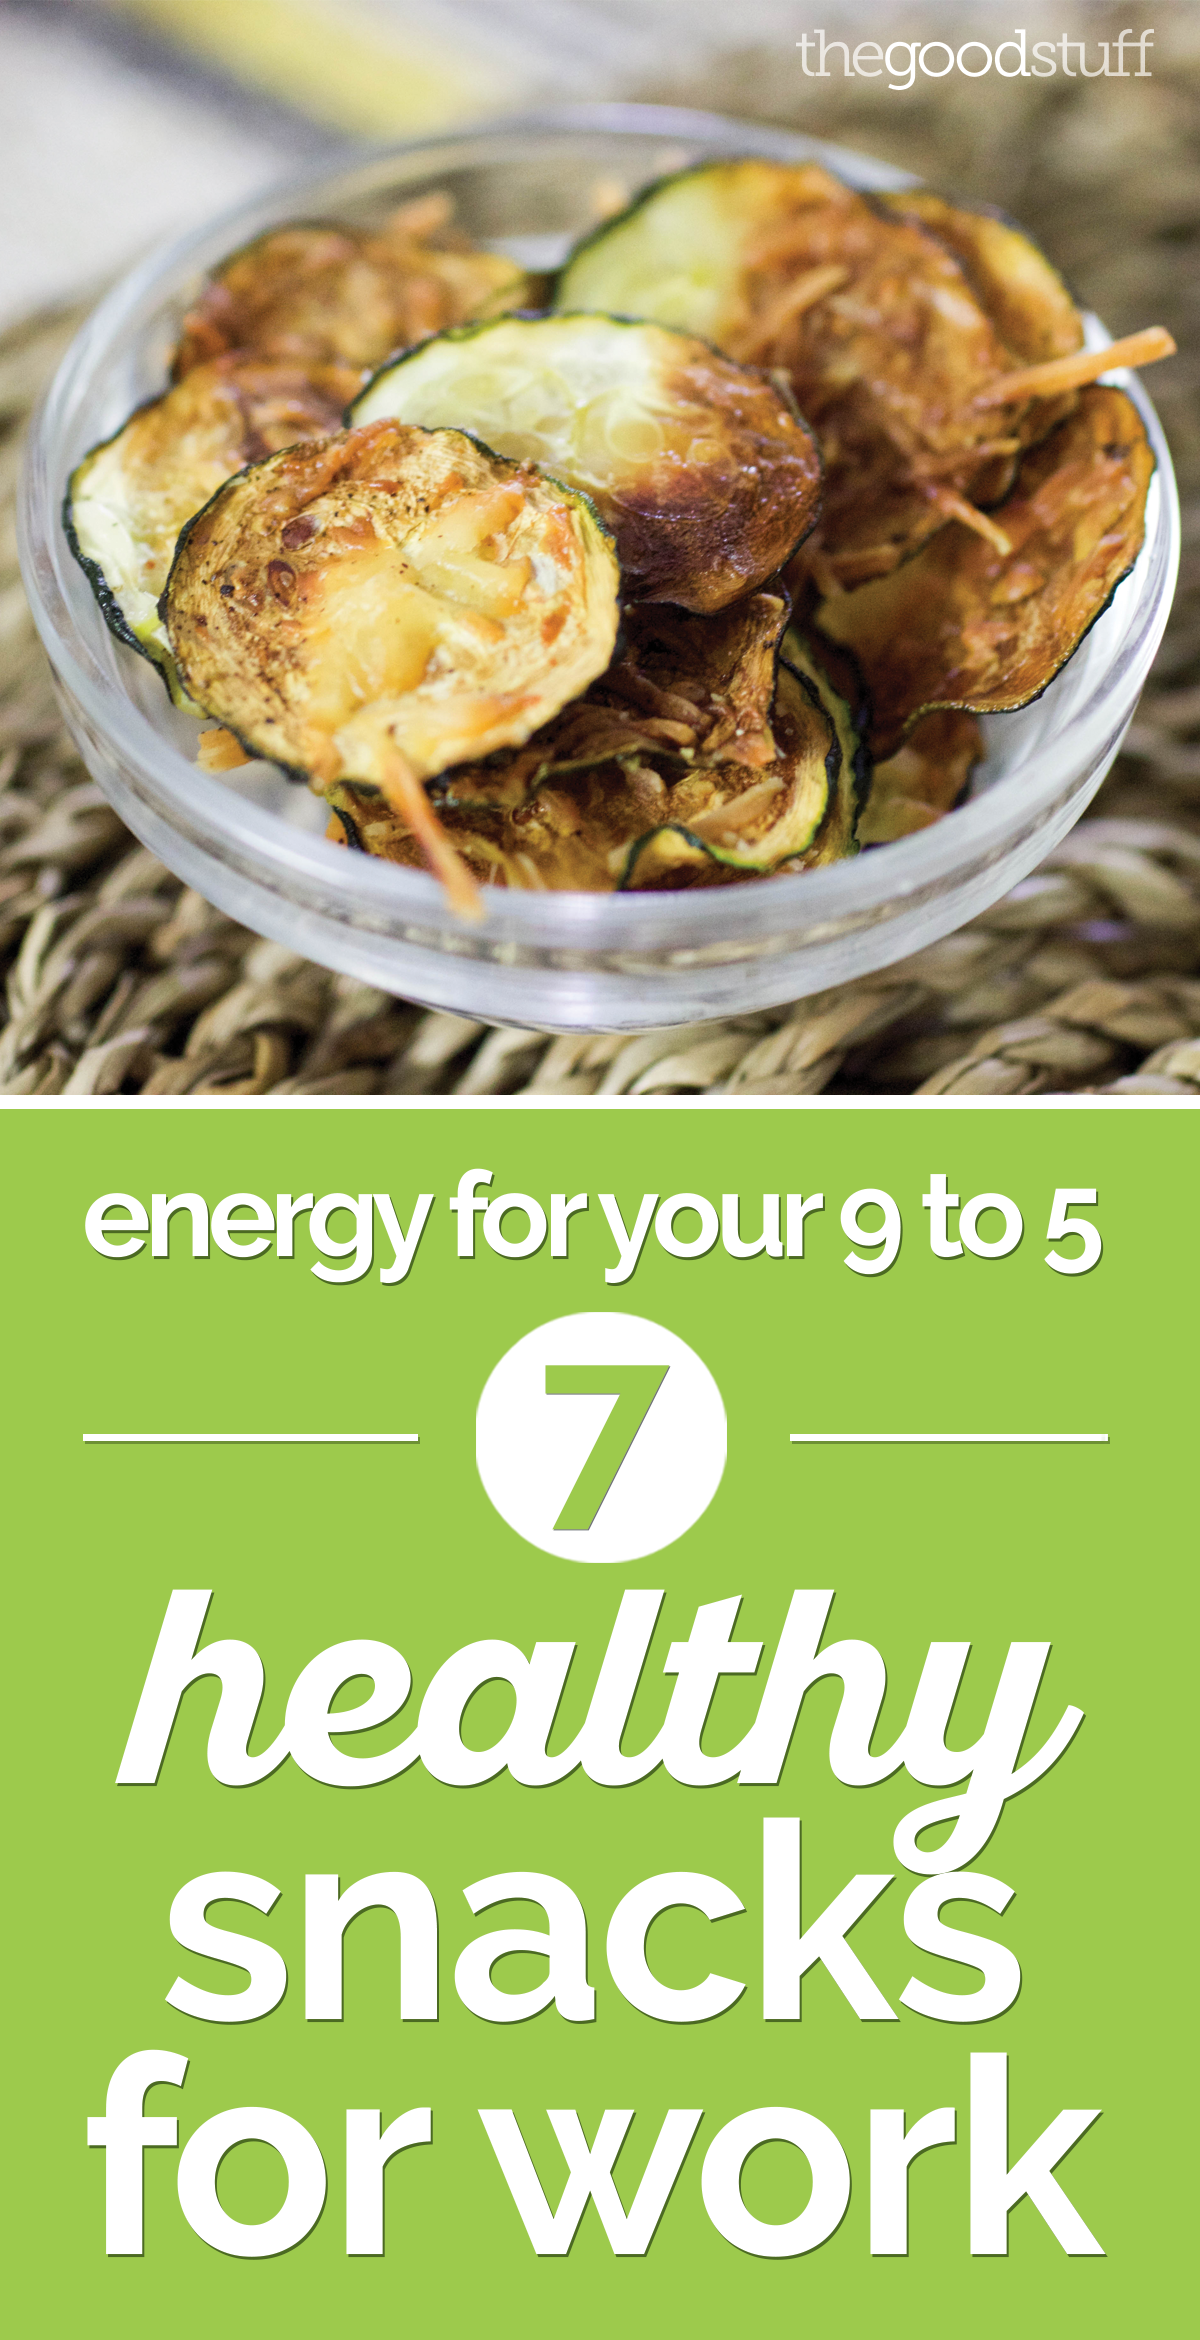 Energy for Your 9 to 5: 10 Healthy Snacks for Work | the good stuff